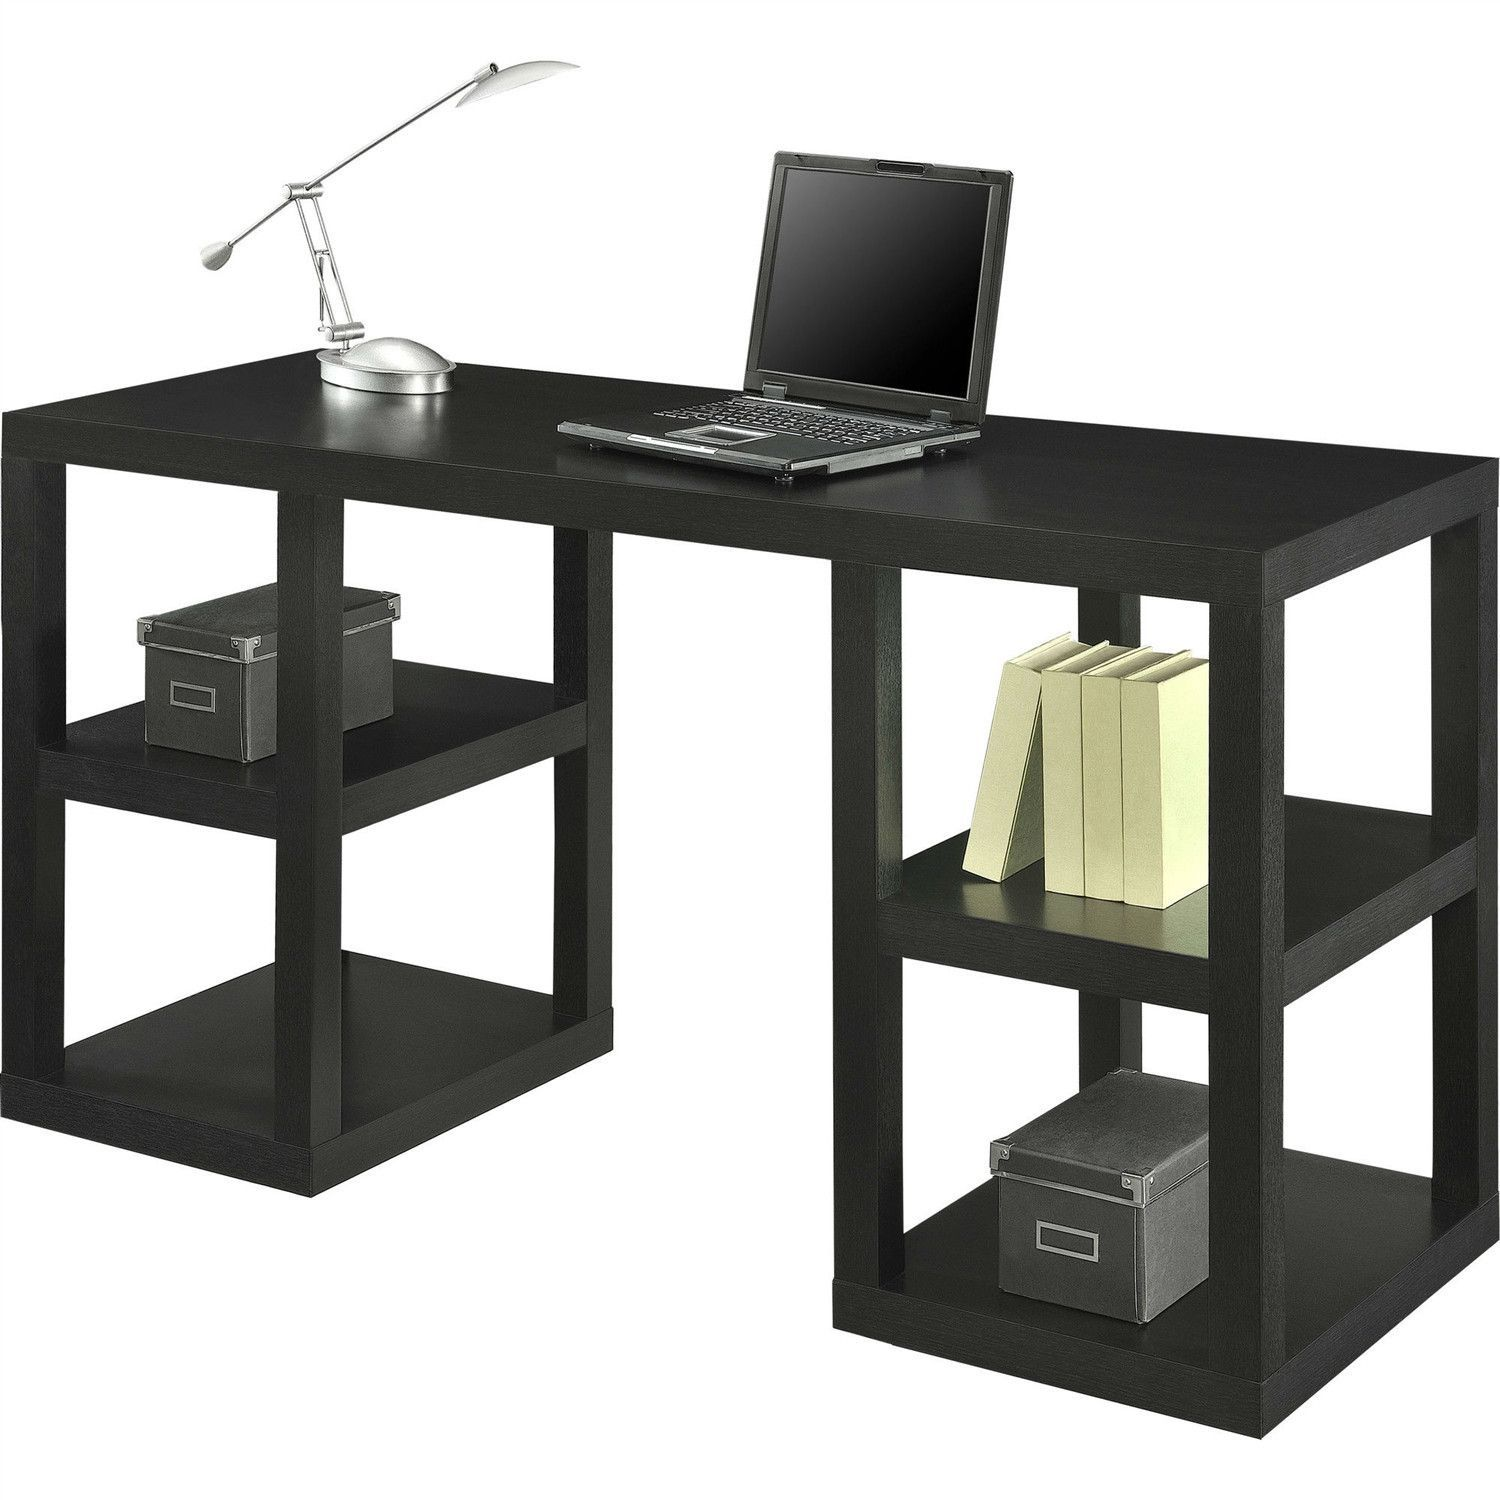 Modern Home Office Computer Desk In Black Oak Wood Finish